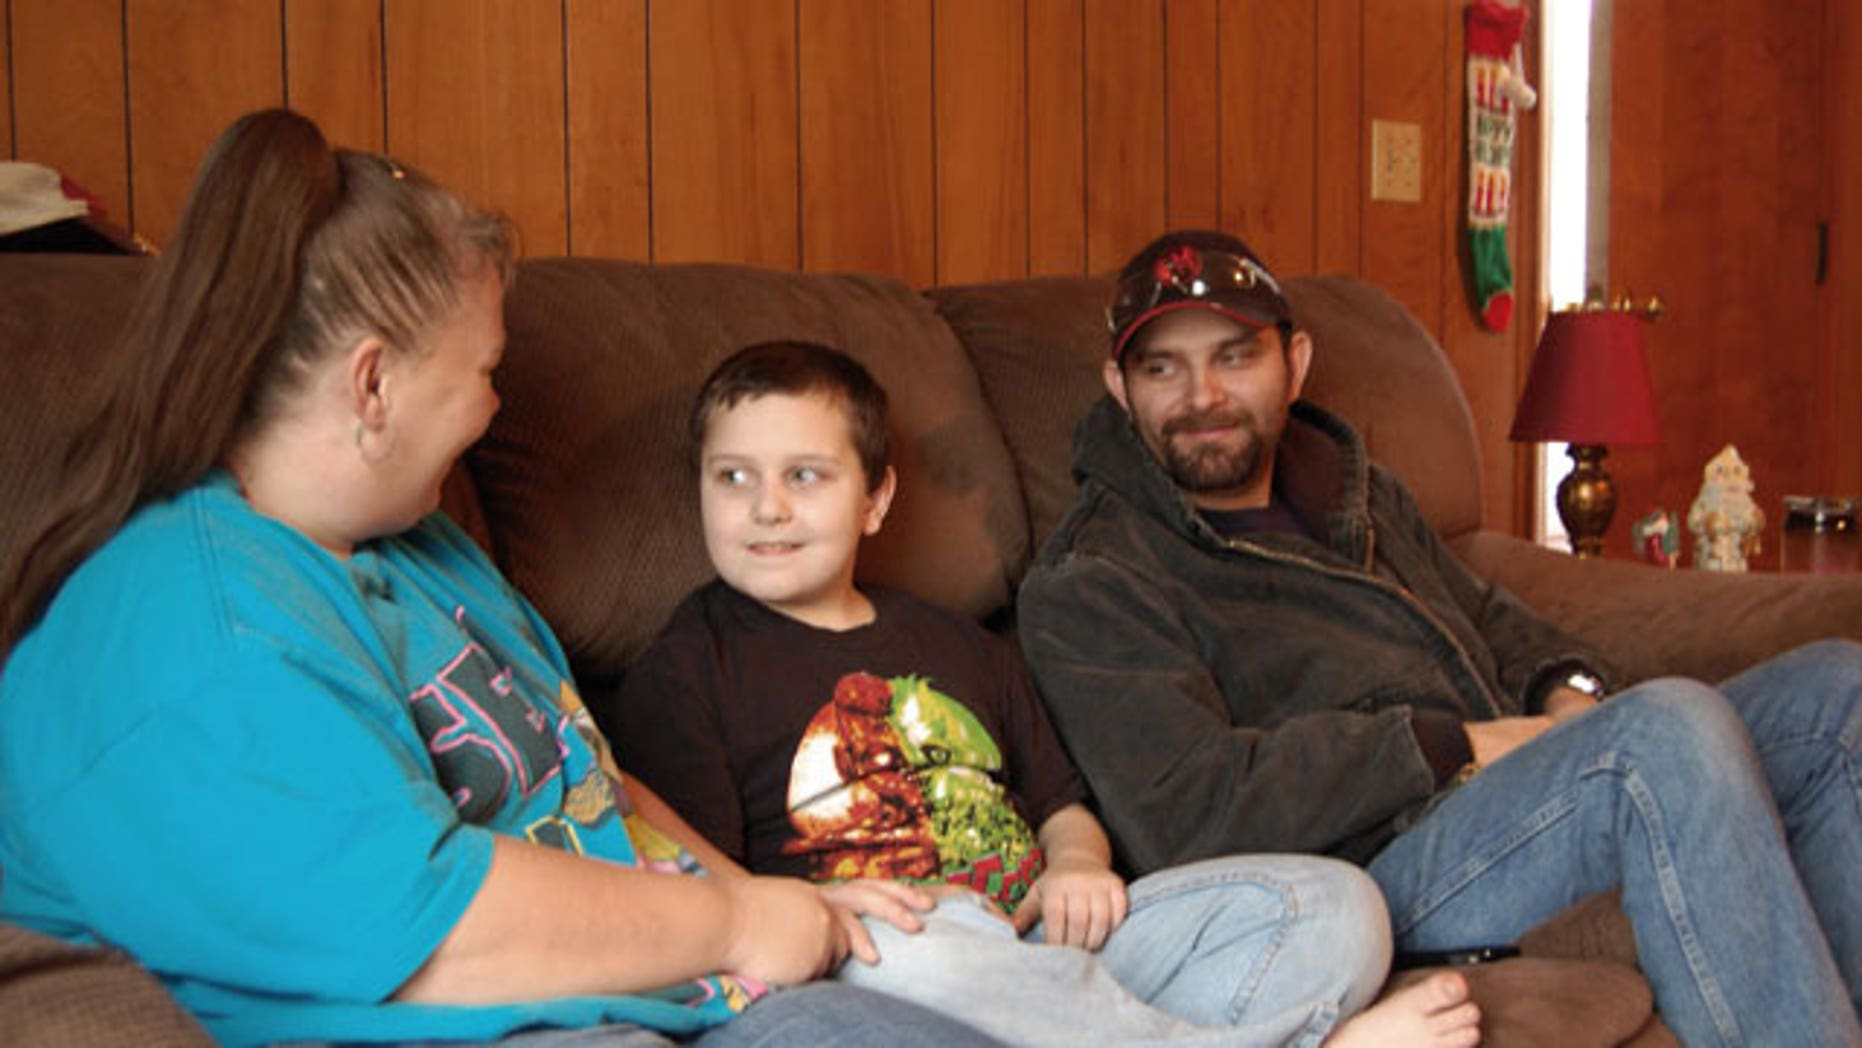 December 22, 2011: Kentucky mother Sandra Baker, left, sits with her son, Christopher, and husband, Scottie at Sandra's home, in Harrodsburg, Ky.